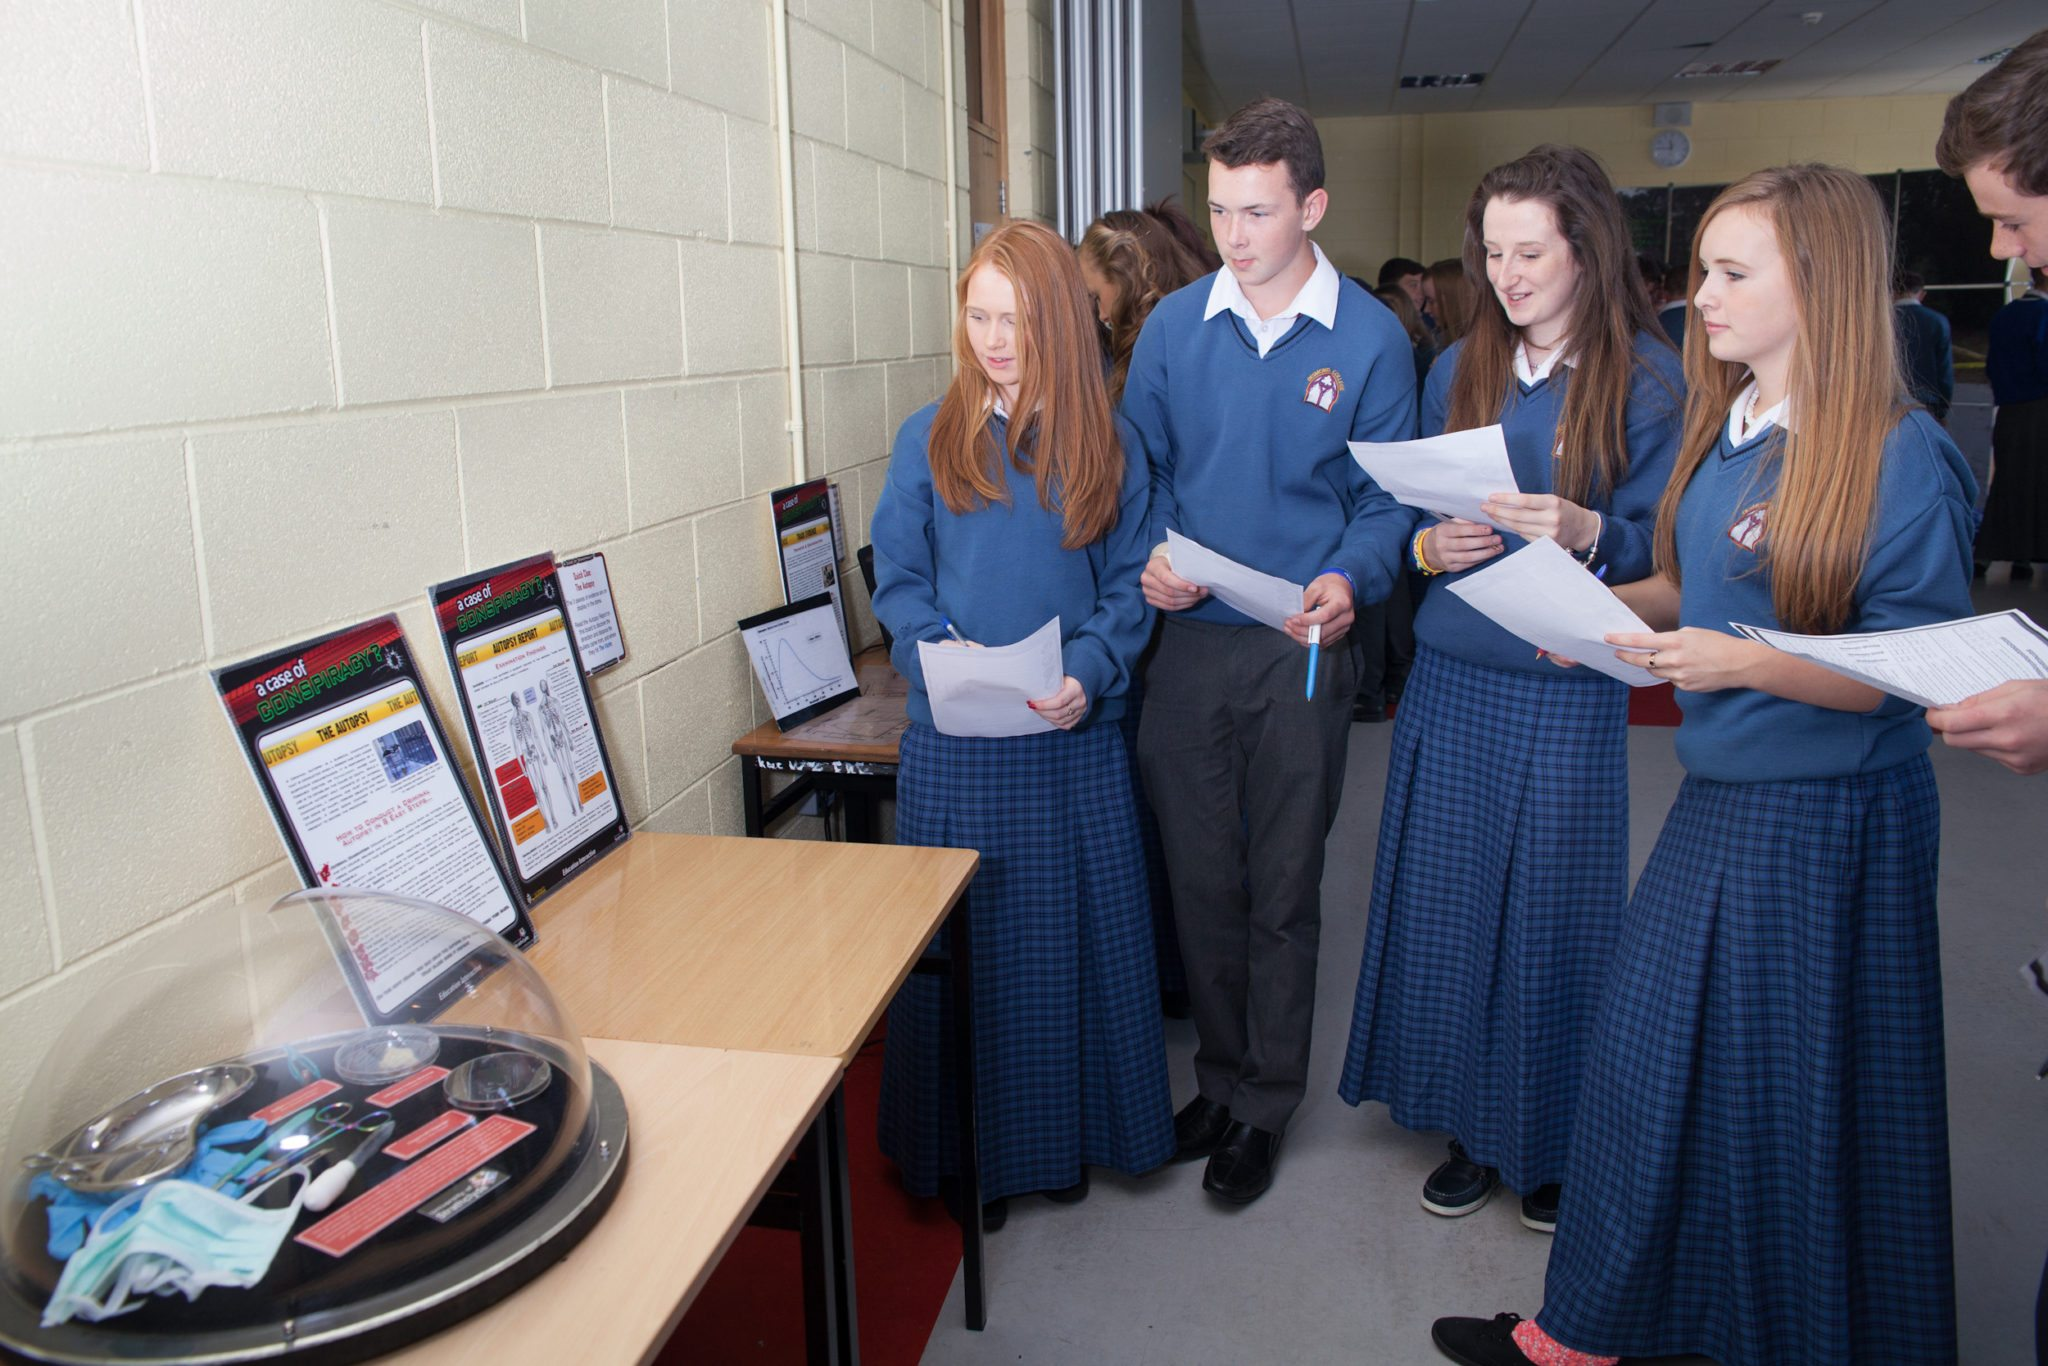 October: Students Enjoy Forensic Science Day at Desmond College